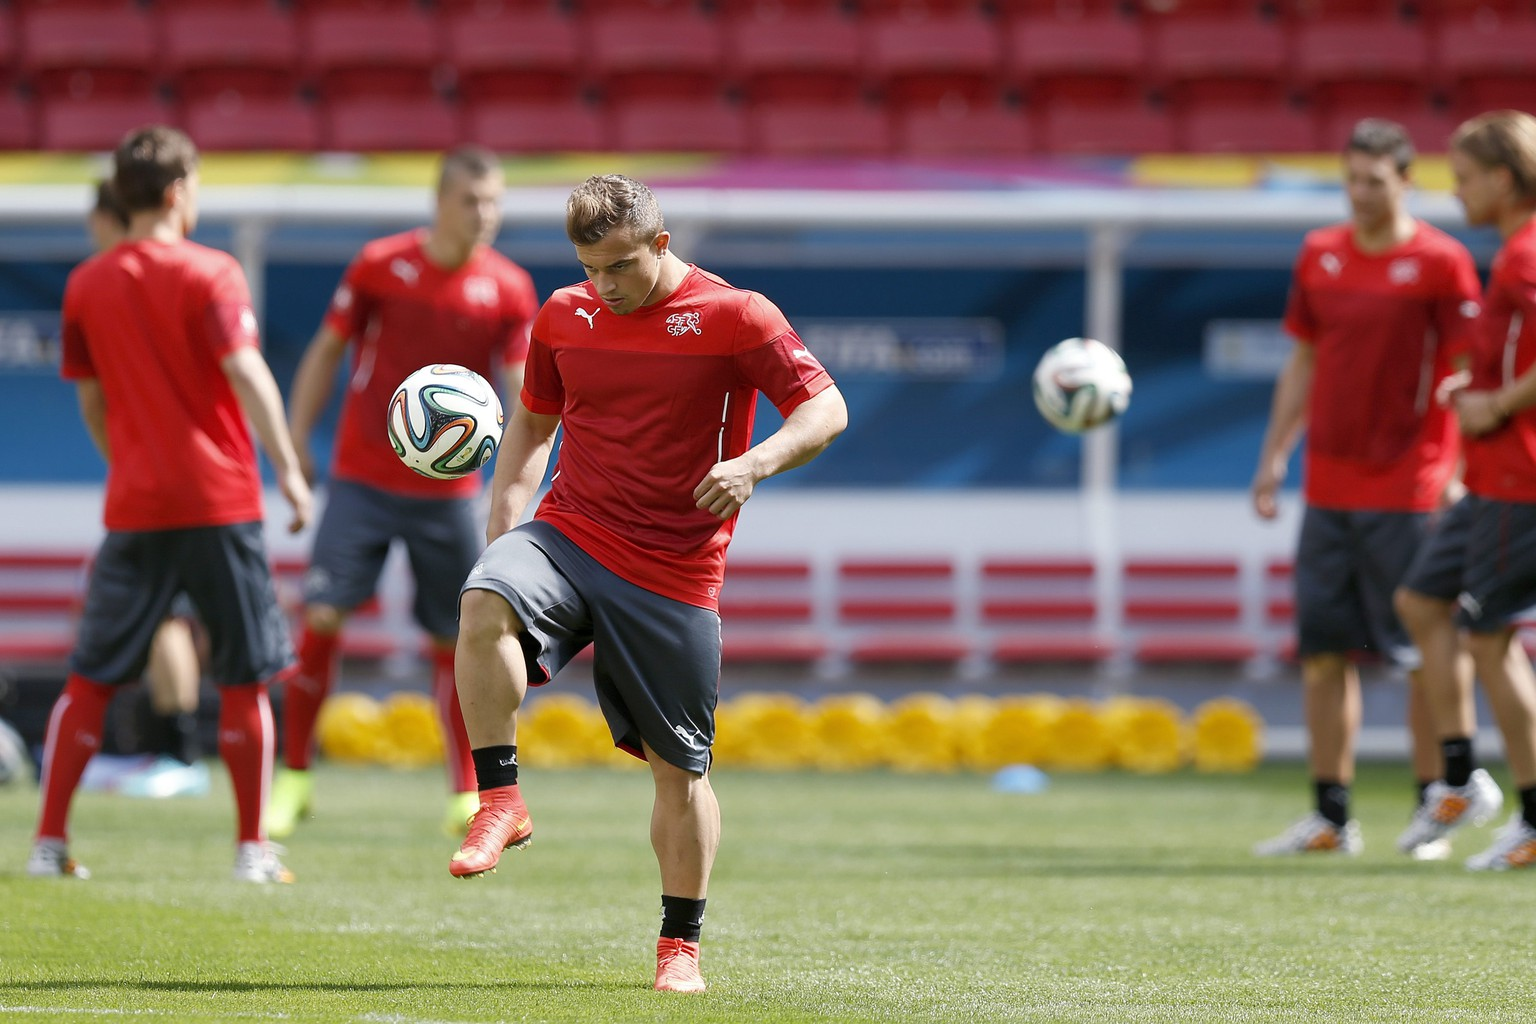 epa04256283 Switzerland's Xherdan Shaqiri juggles the ball during a training session of the Swiss national soccer team in the National Stadium in Brasilia, Brazil, Saturday, June 14, 2014, one day prior to the group E stage match against Ecuador.  EPA/PETER KLAUNZER